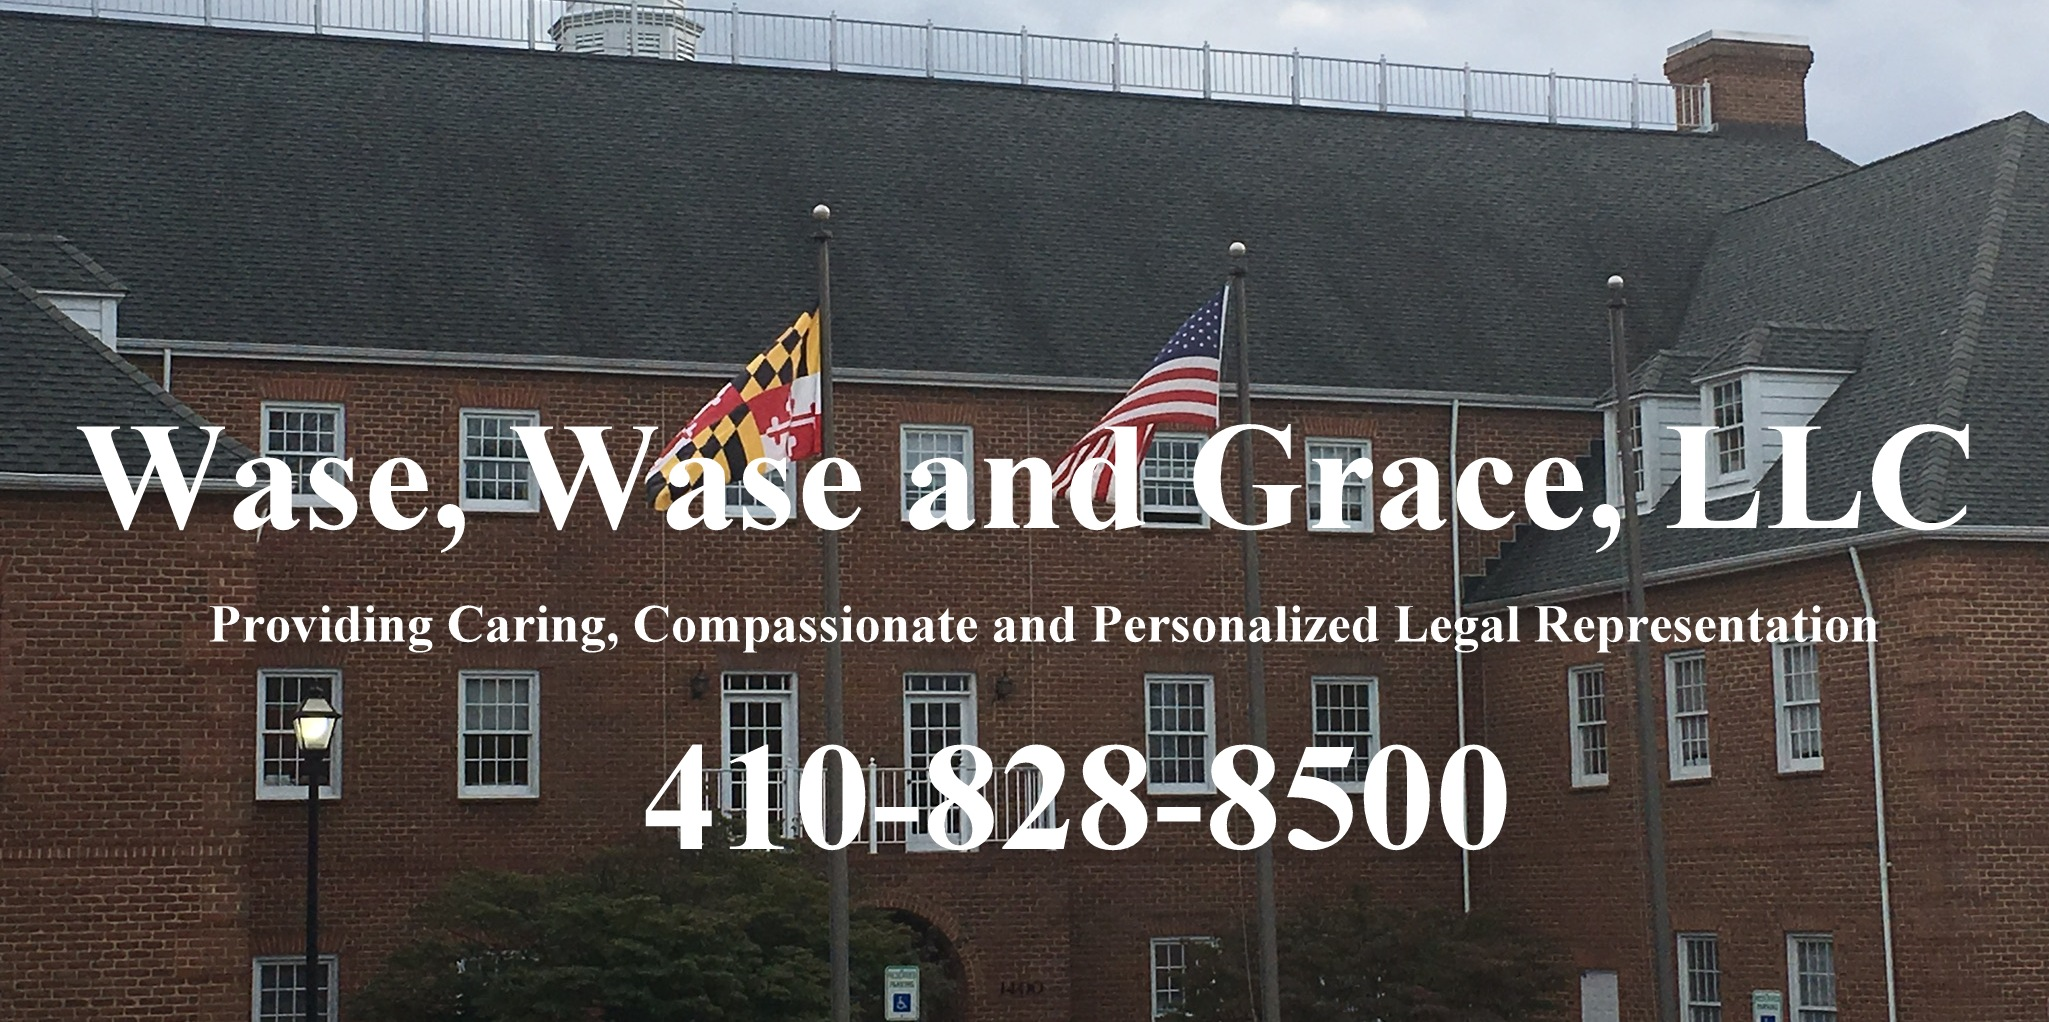 wasegracelaw - Lawyer Baltimore